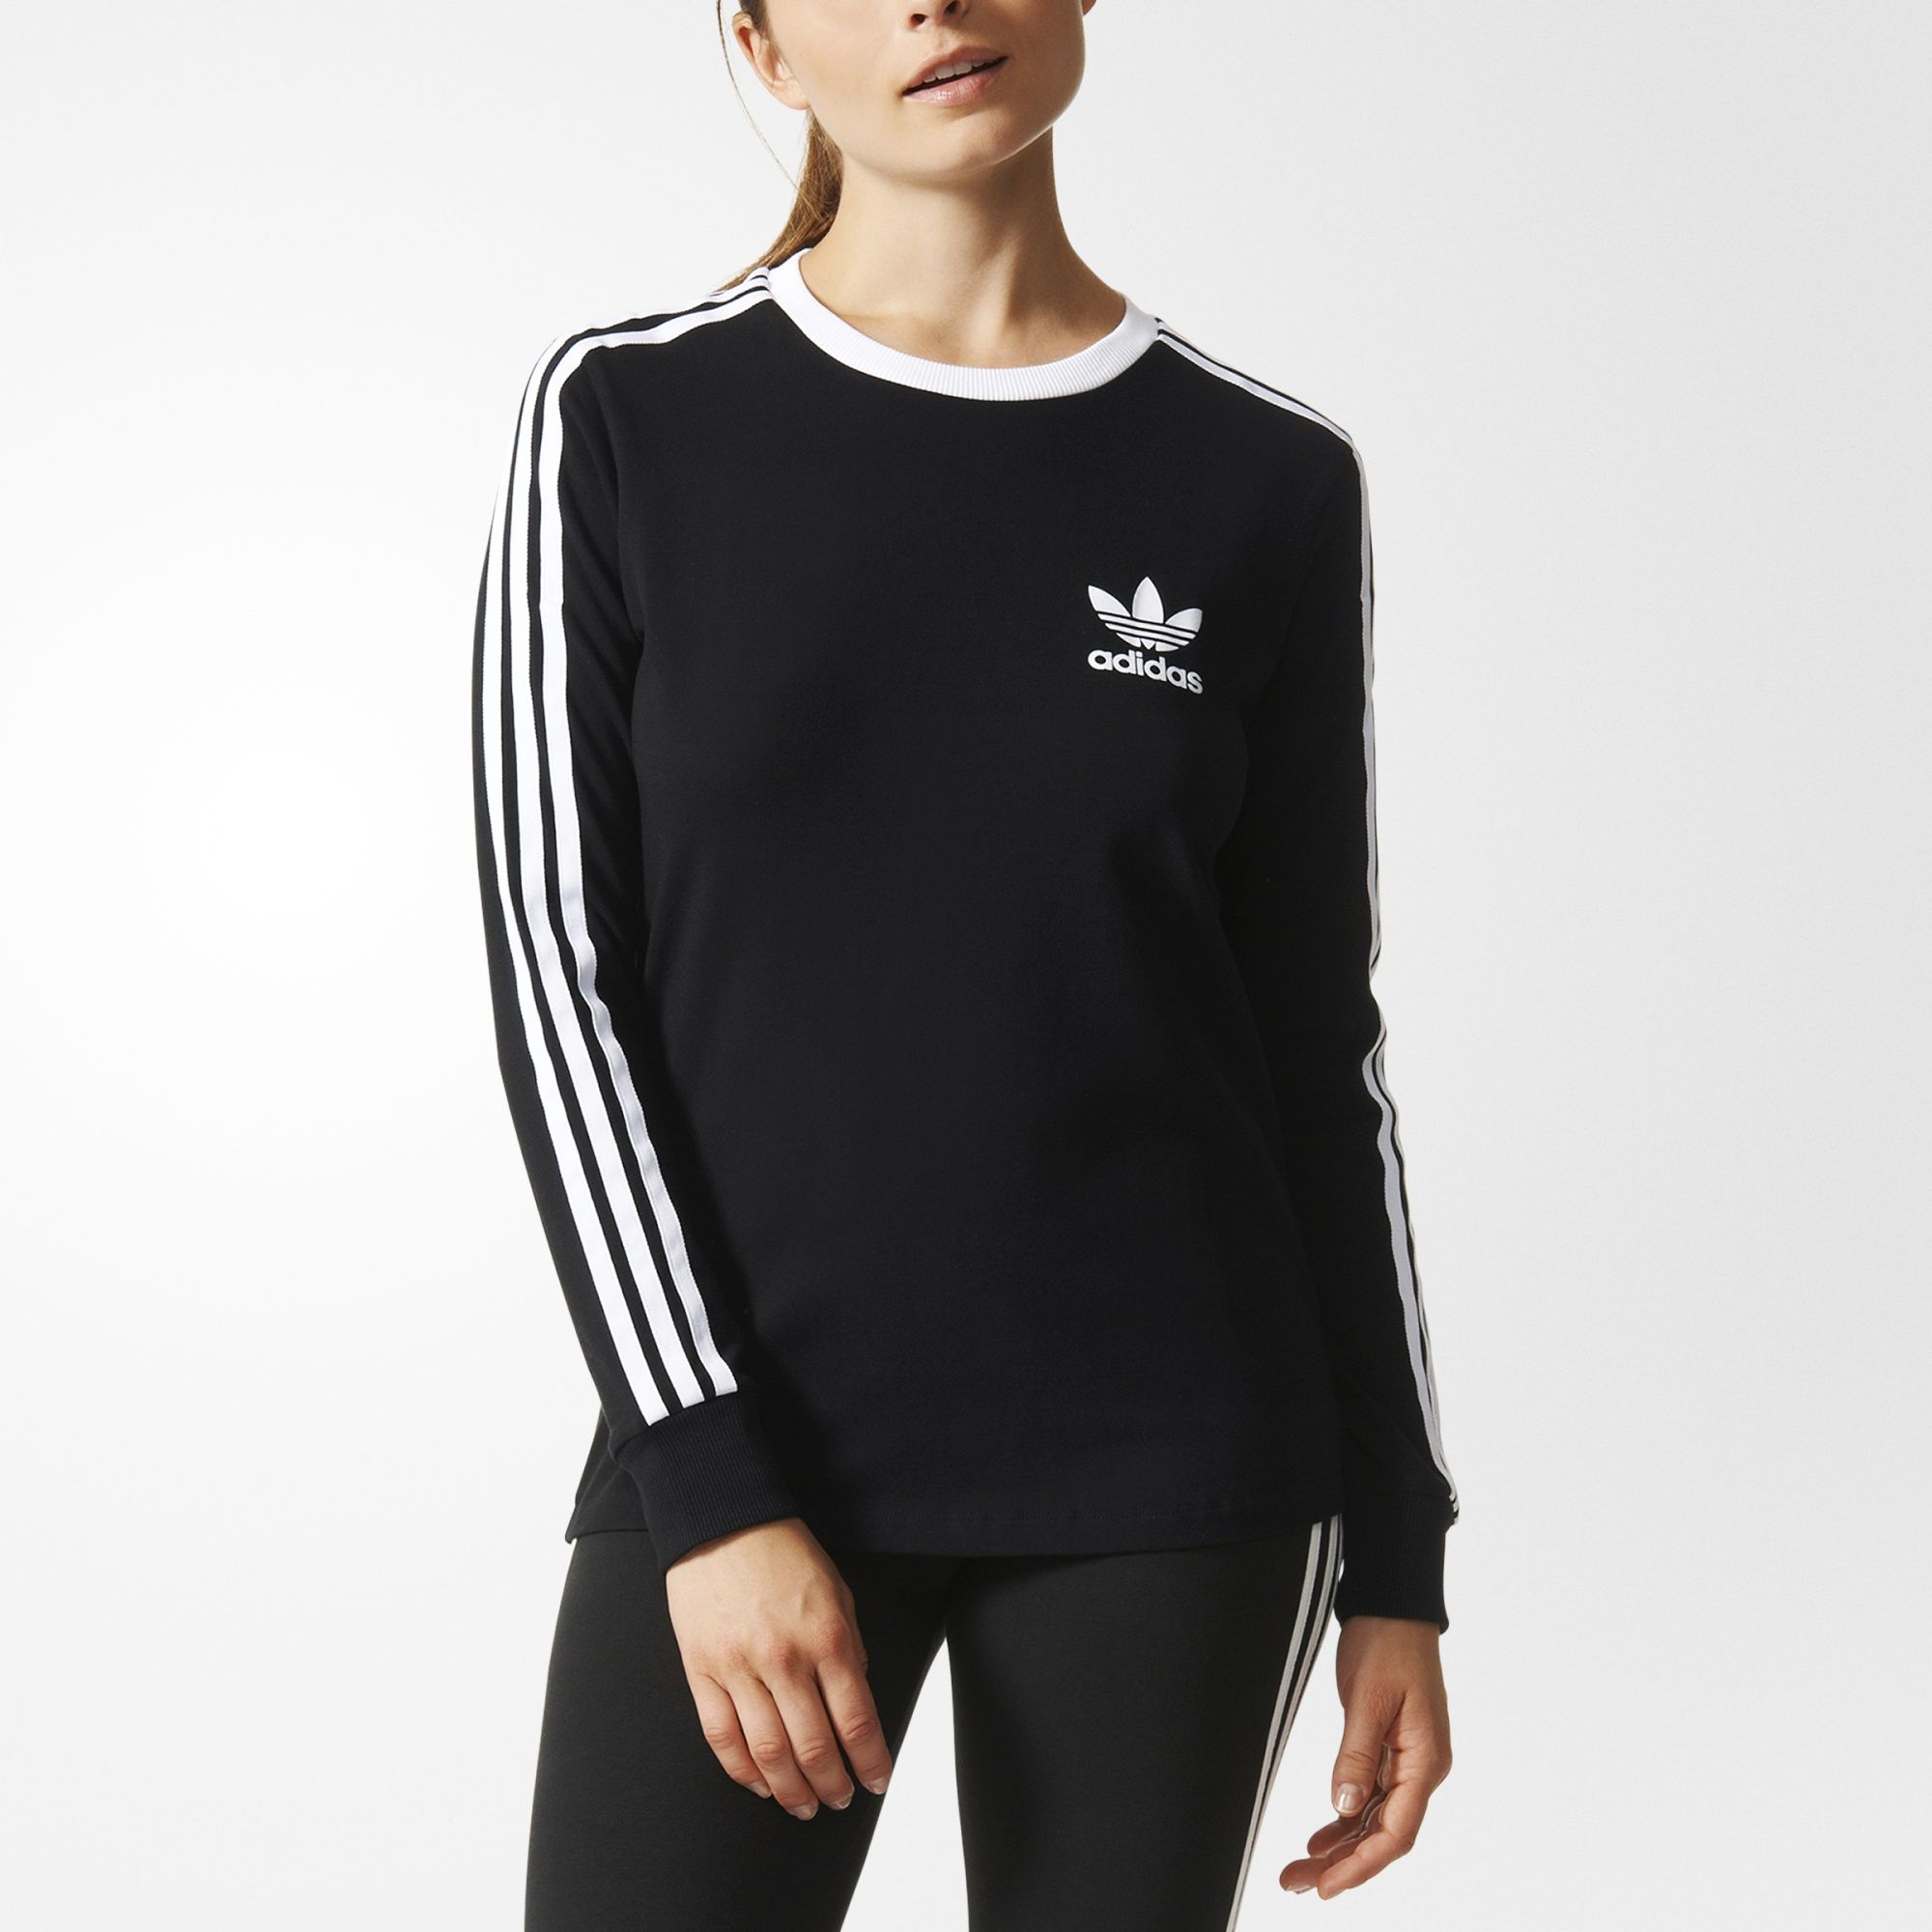 Inspired By An 80s Favourite From The Adidas Archives